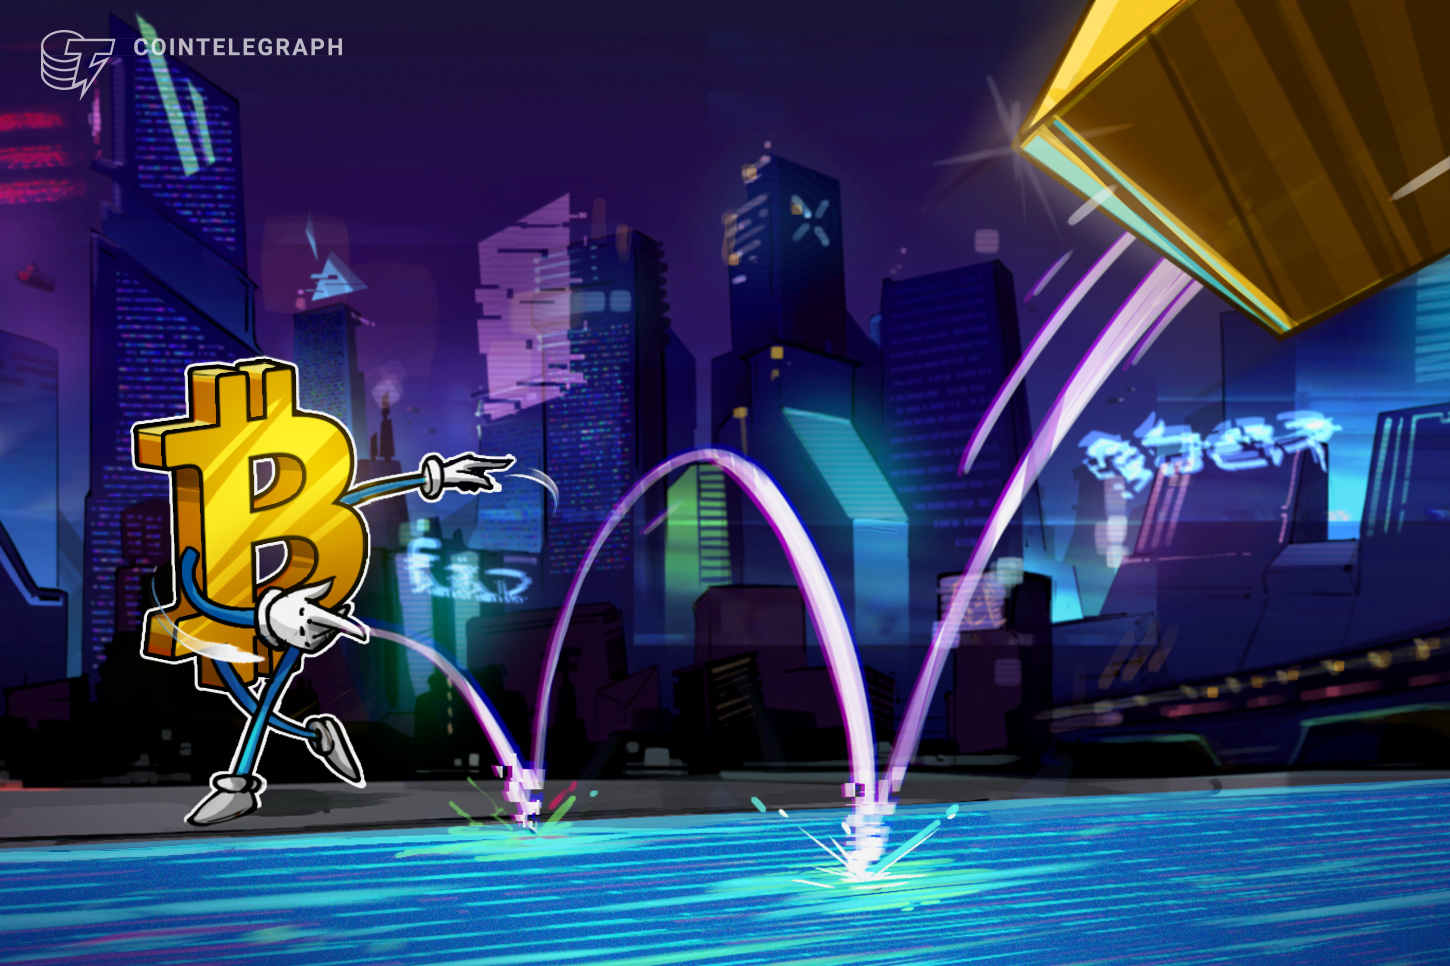 Institutions buying Bitcoin rather than gold as inflation cranks up: JPMorgan